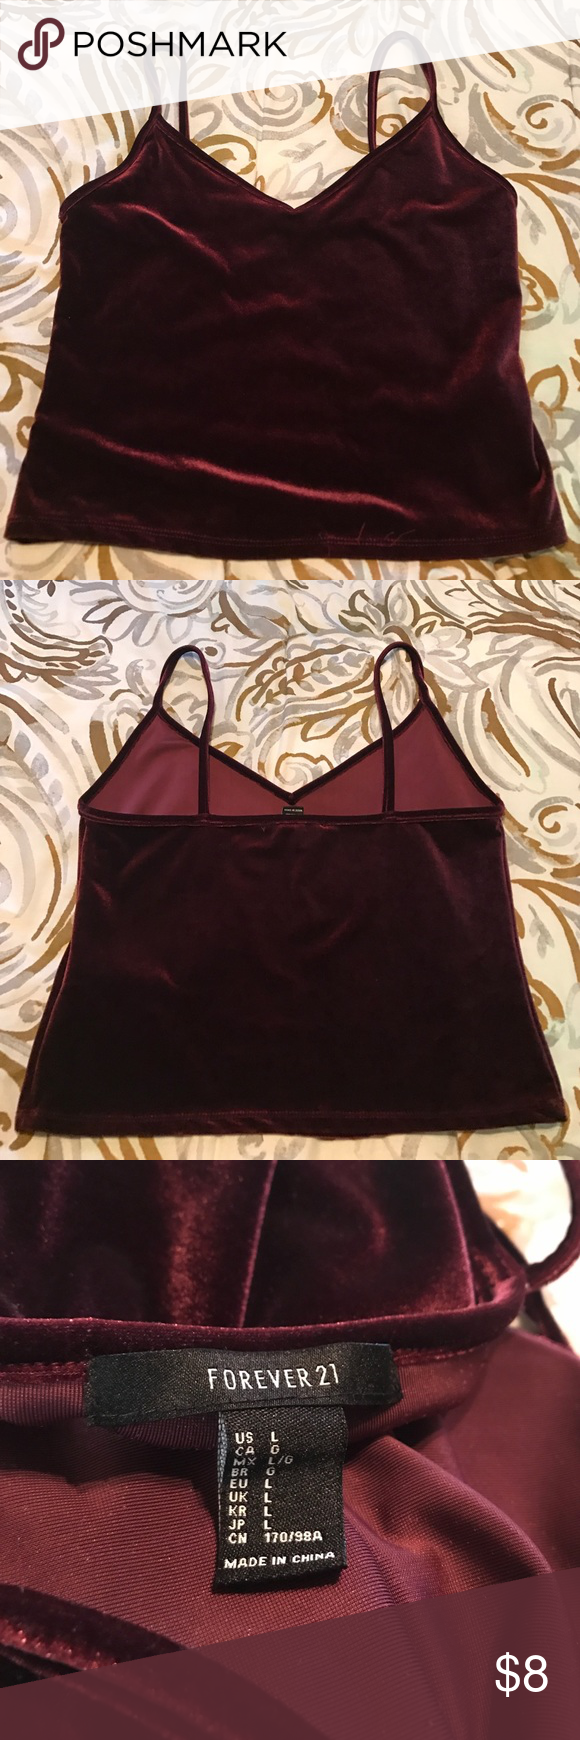 ff41544c82ca40 Burgundy cropped velvet tank top size Large Burgundy velvet cropped top  size Large Forever 21 Tops Tank Tops